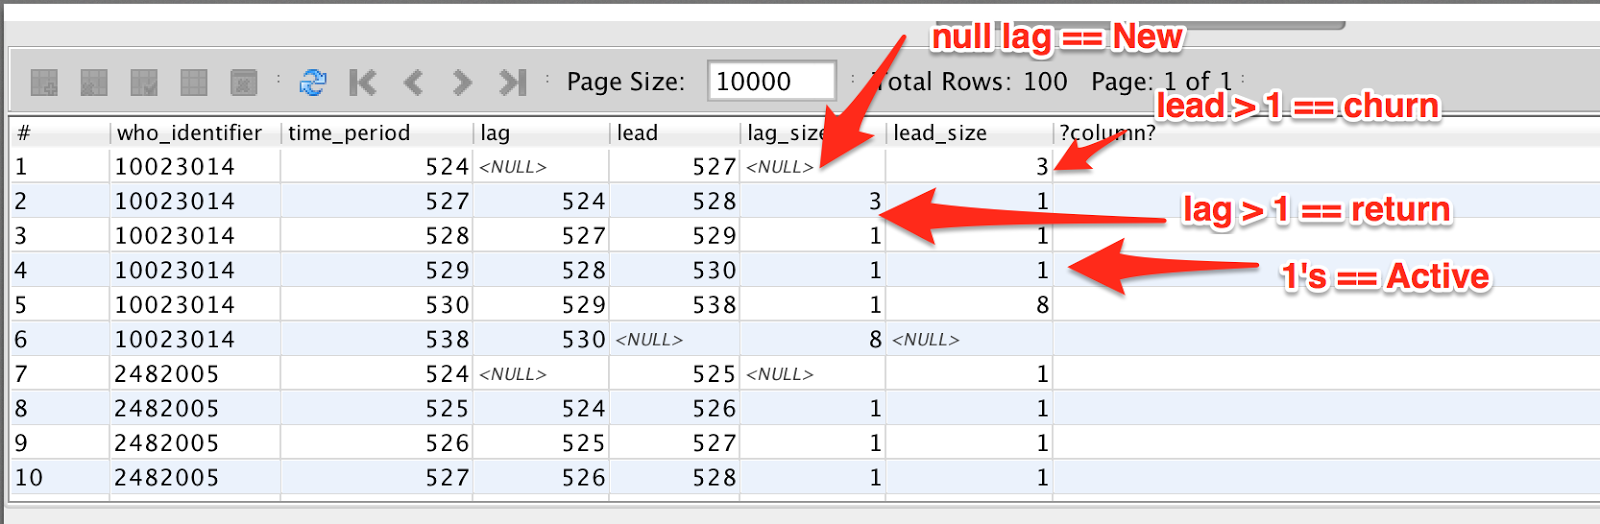 SQL for calculating Churn, Retention & Re-Engagement